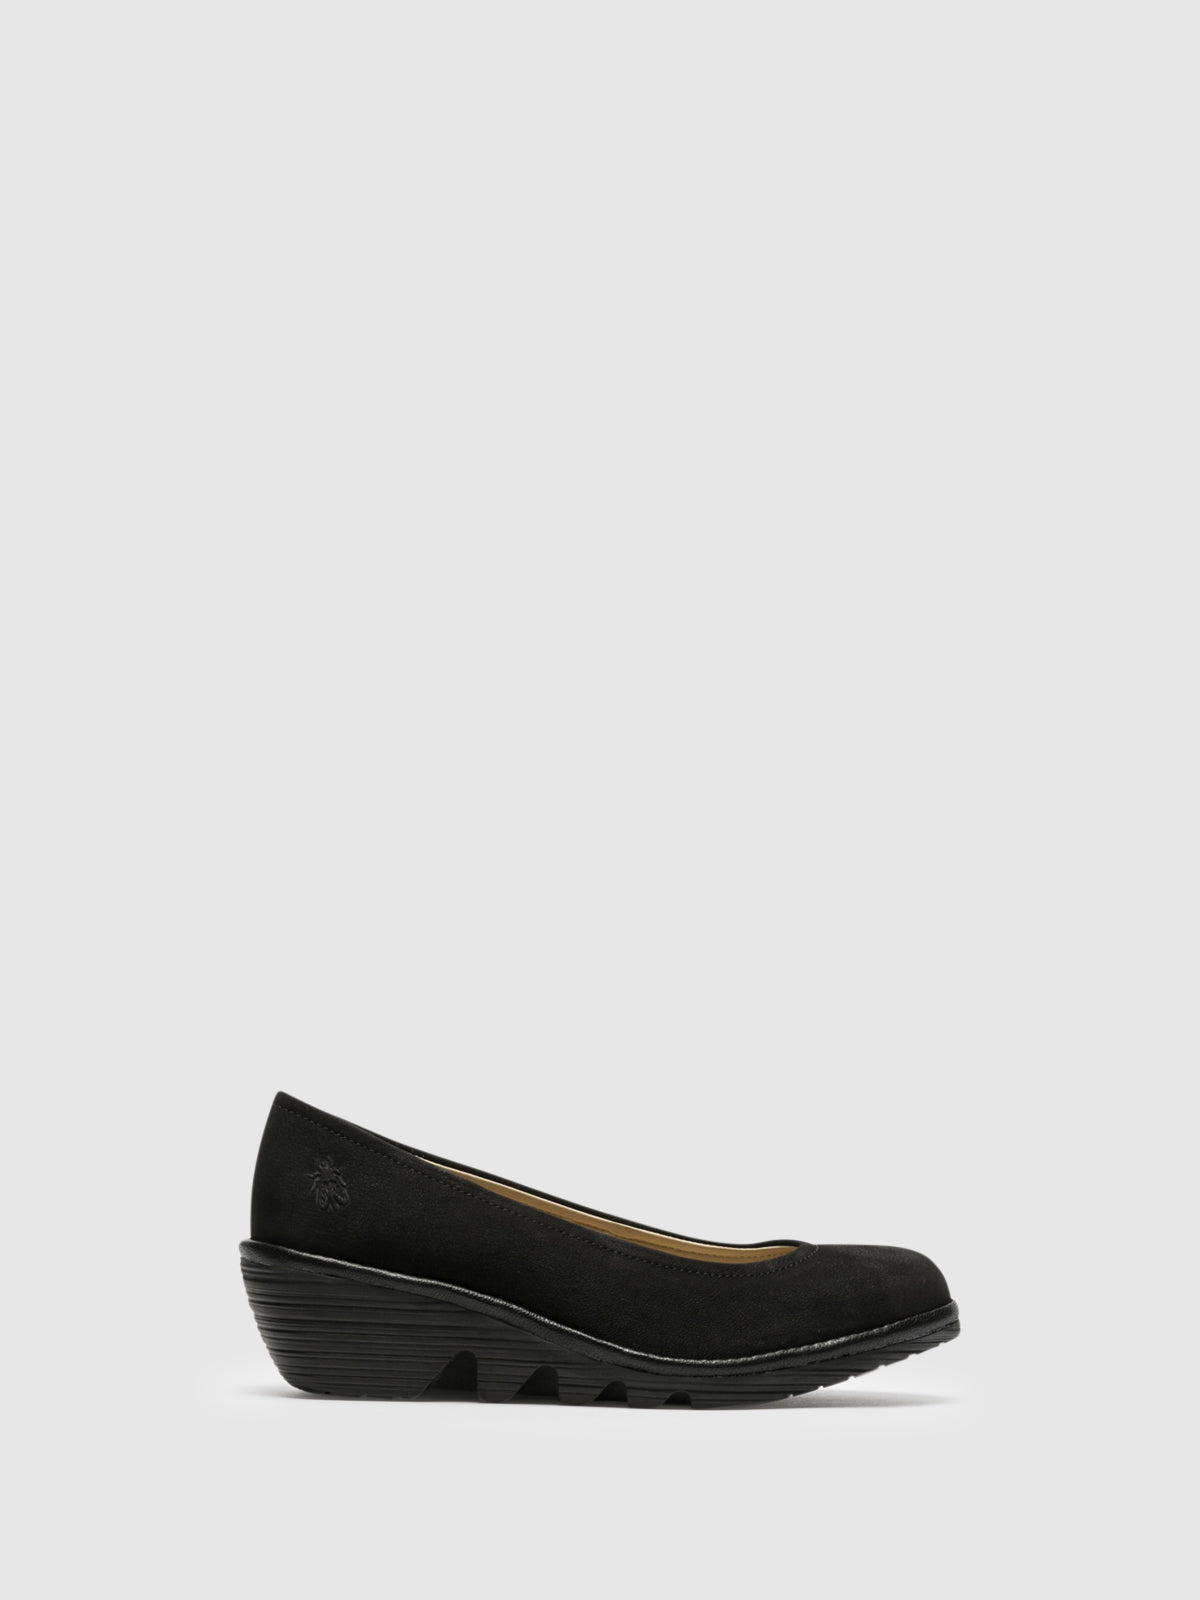 Fly London Black Wedge Ballerinas